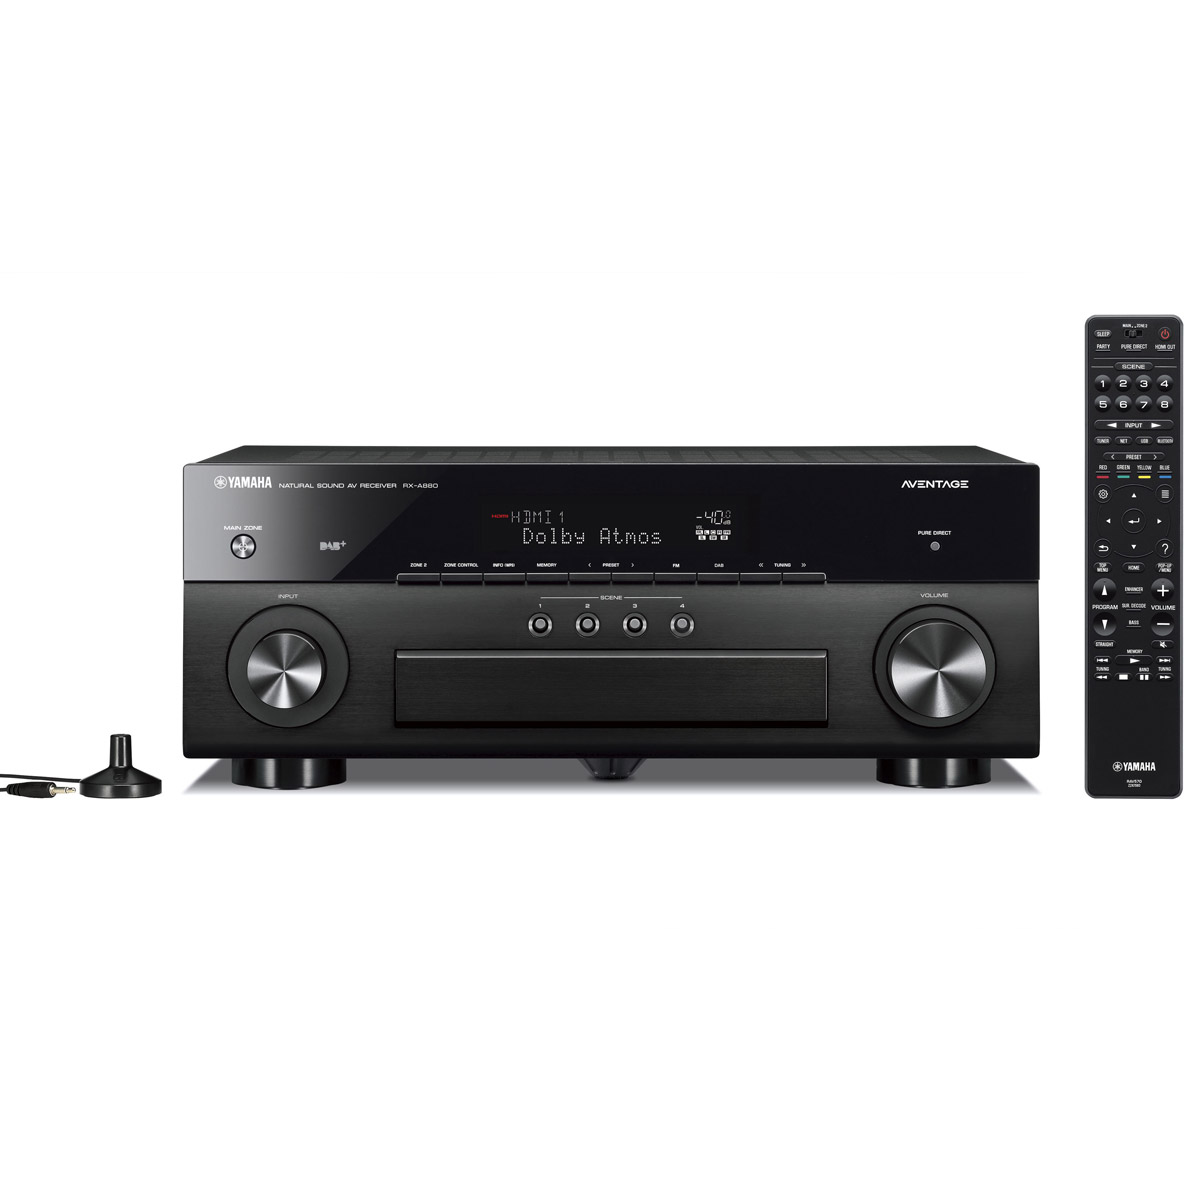 Ampli home cinéma Yamaha RX-A880 Noir Ampli-tuner Home Cinéma 7.2 3D 100W/canal - Dolby Atmos/DTS:X - 7x HDMI - HDCP 2.2 Ultra HD 4K - Wi-Fi/Bluetooth/DLNA/AirPlay - MusicCast/MusicCast Surround - A.R.T. Wedge - Calibration YPAO RSC